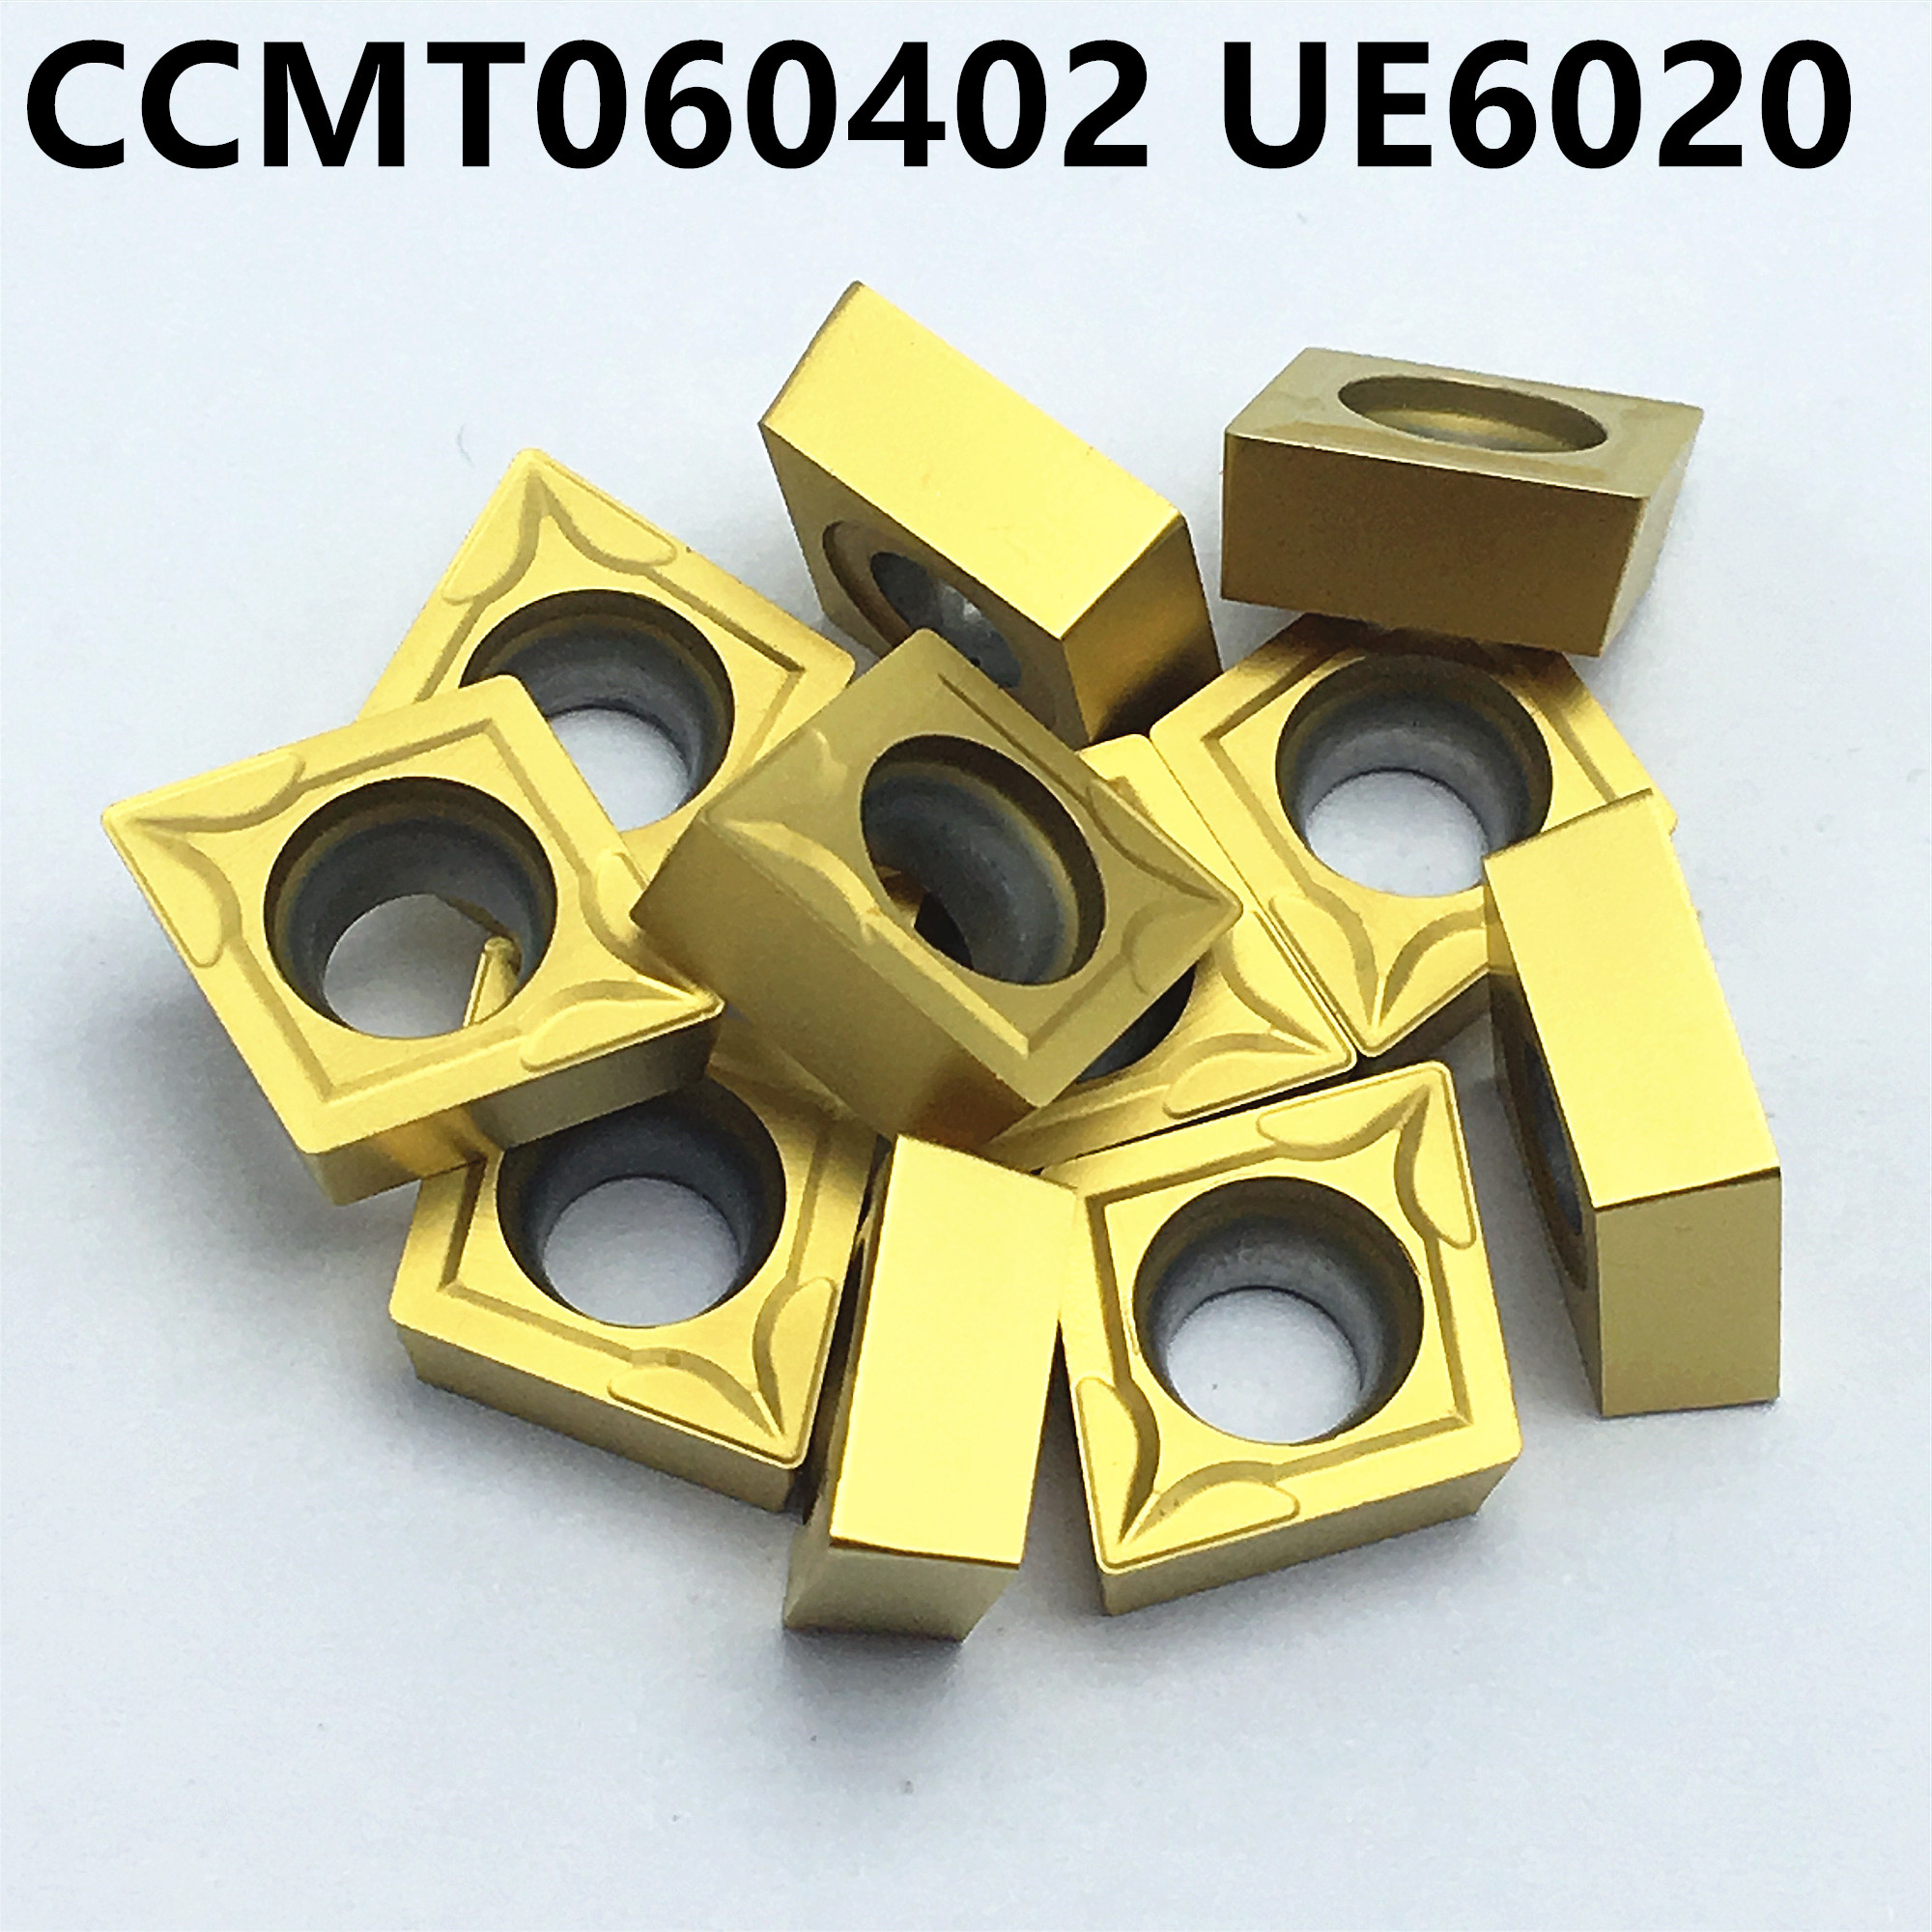 CCMT060204 UE6020 CCMT060204 US735 CCMT060204 VP15TF Cutting External Turning Tool Milling Tool Carbide Alloy Lathe Milling Cutt